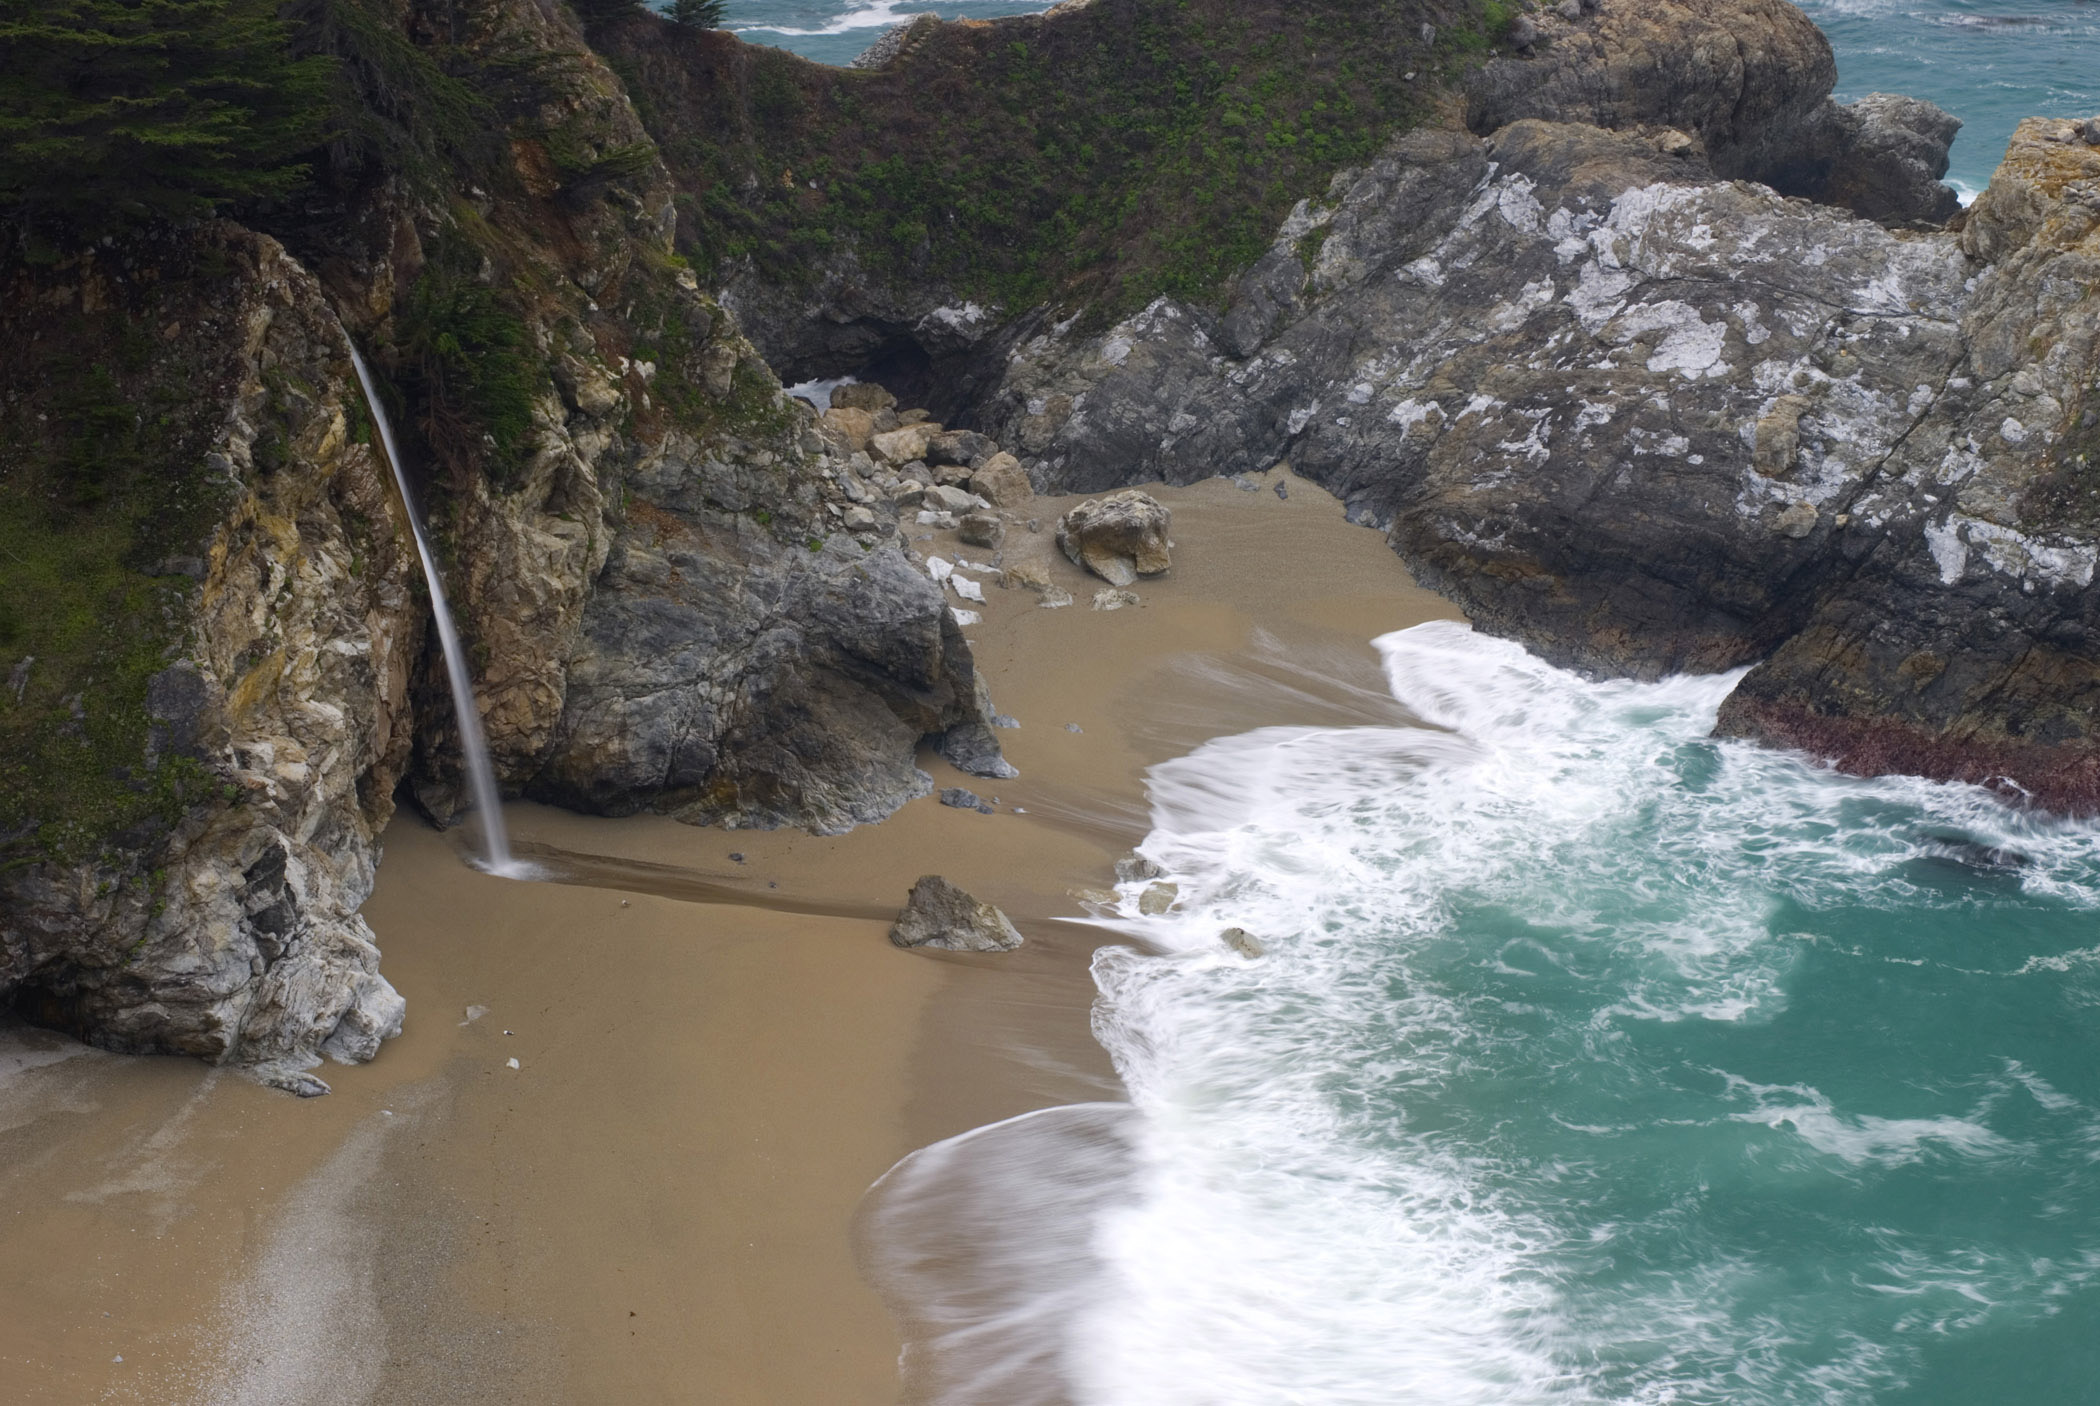 Beautiful McWay Falls in Front the Blue Water Sea in Aerial View